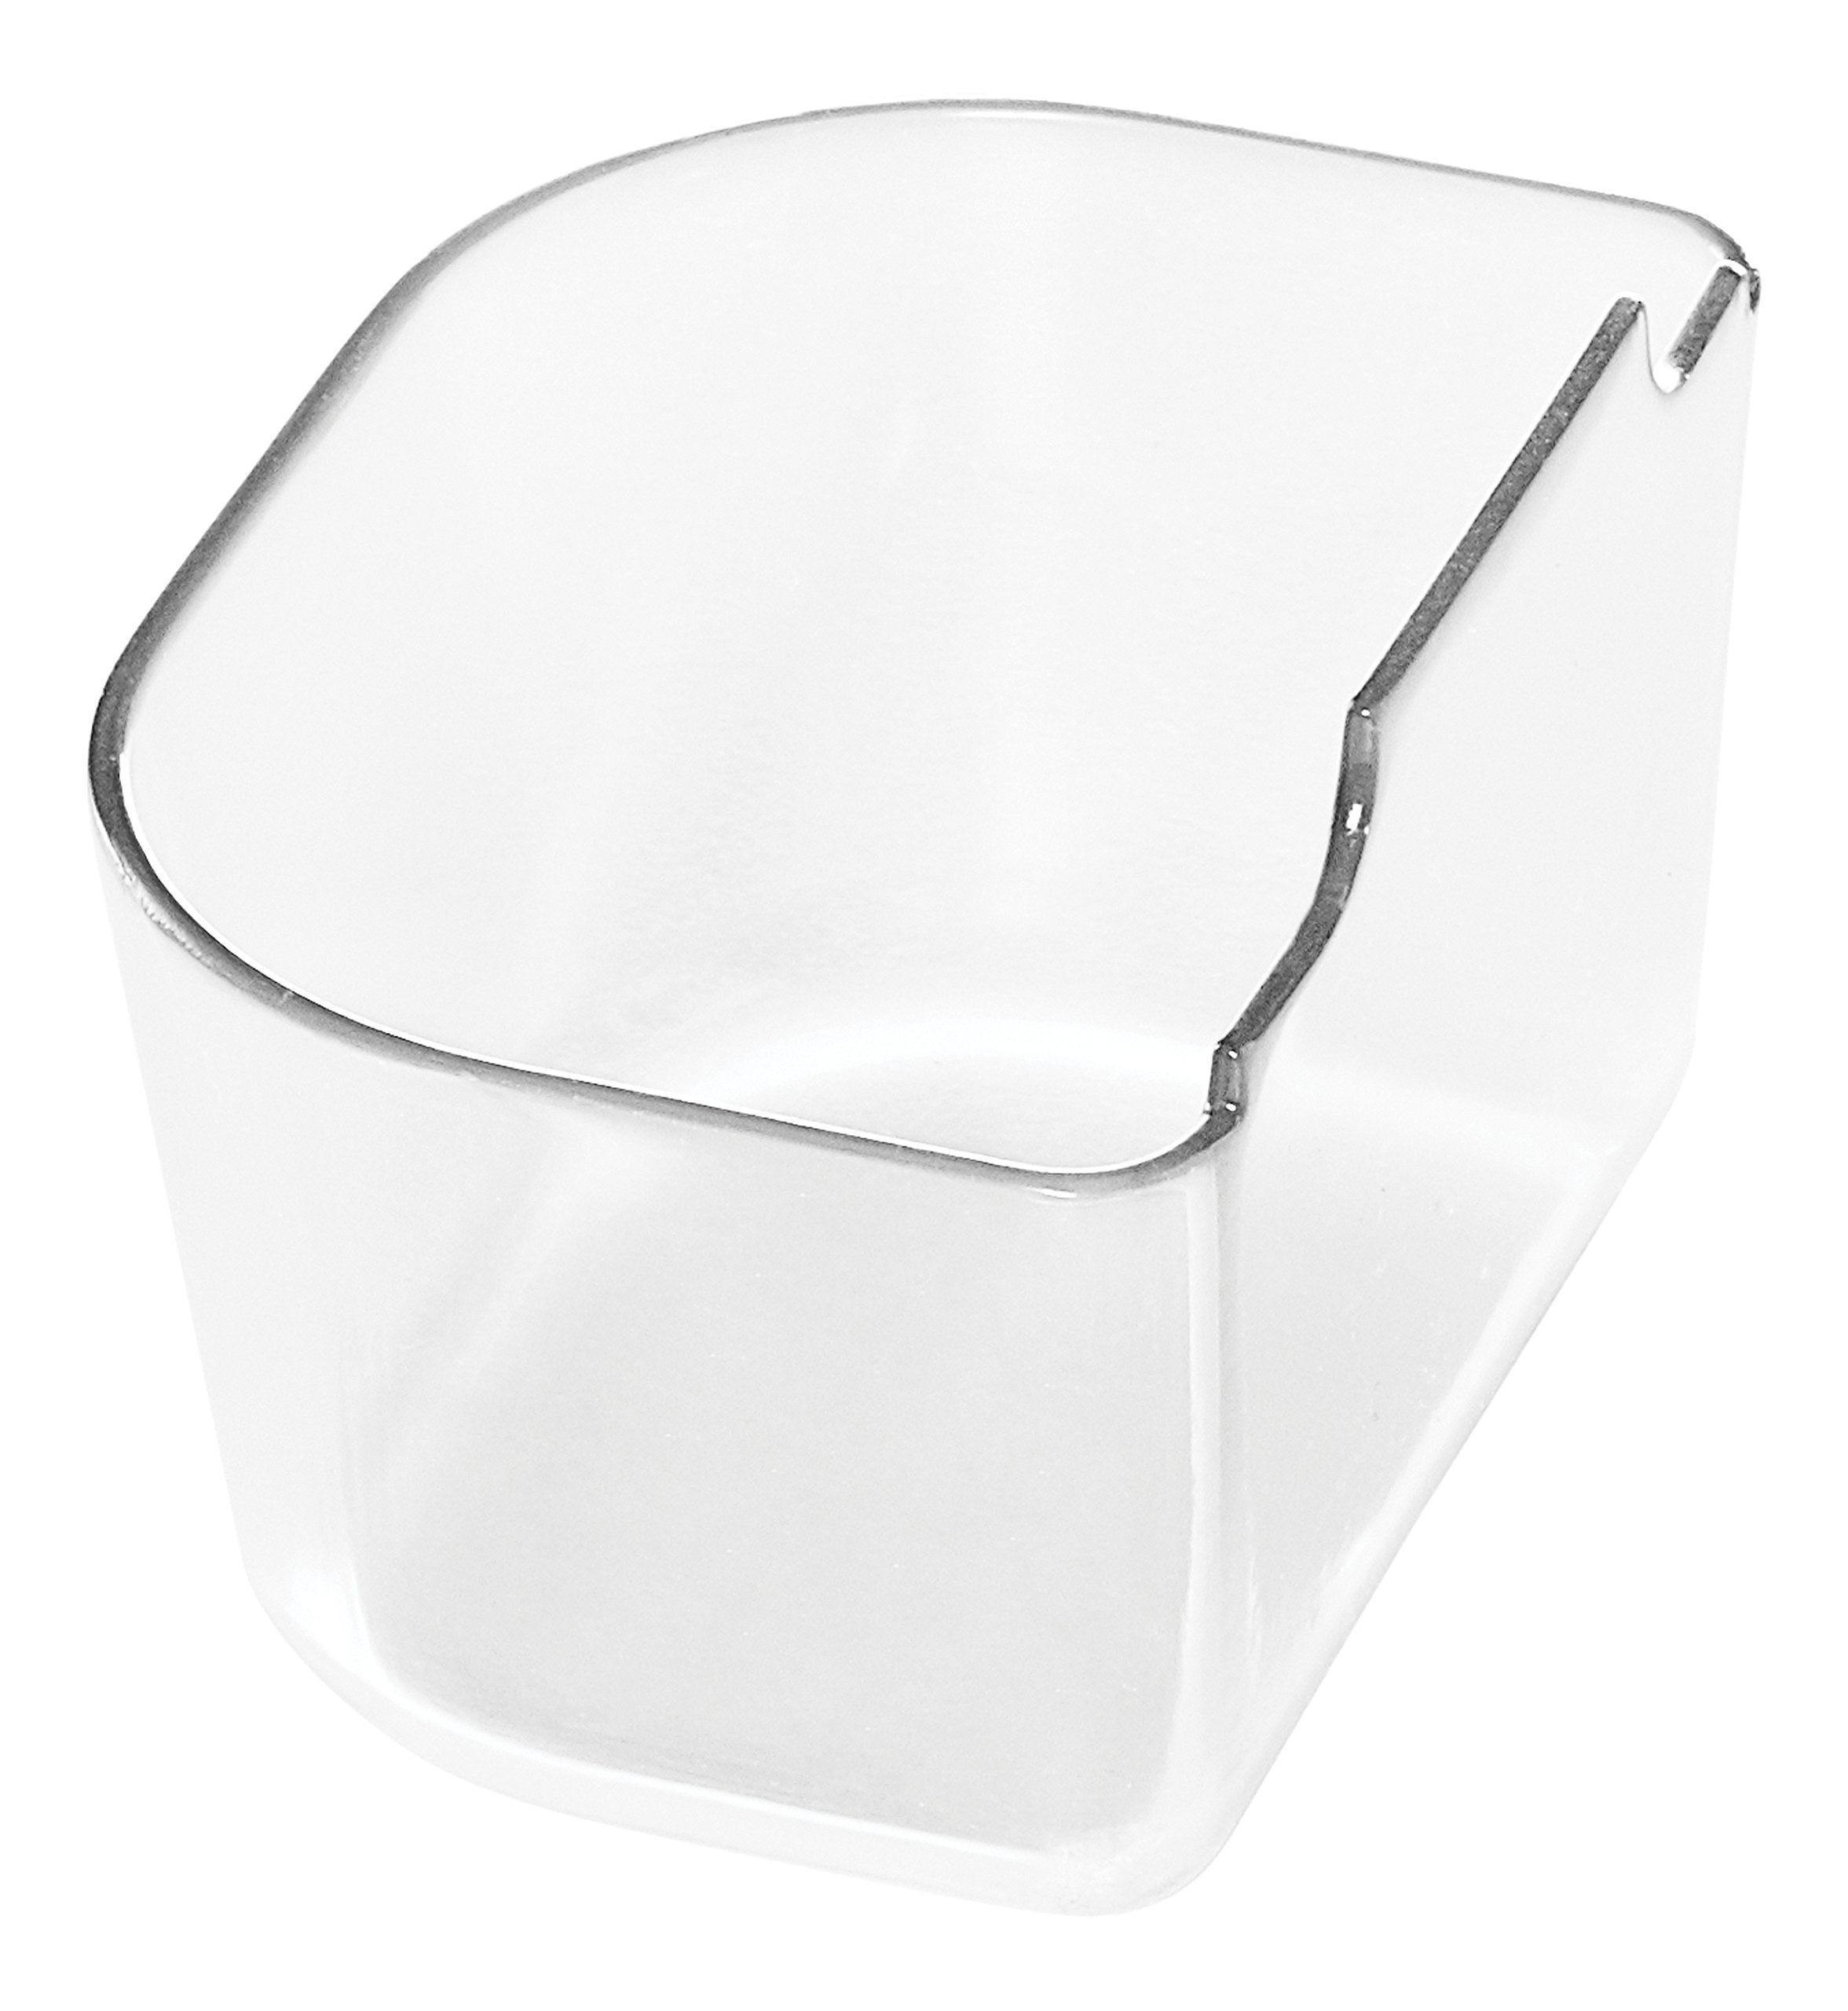 Rubbermaid Brilliance Food Storage Container, Sandwich and Snack Lunch Kit, Clear, 10-Piece Set 1997842 by Rubbermaid (Image #8)